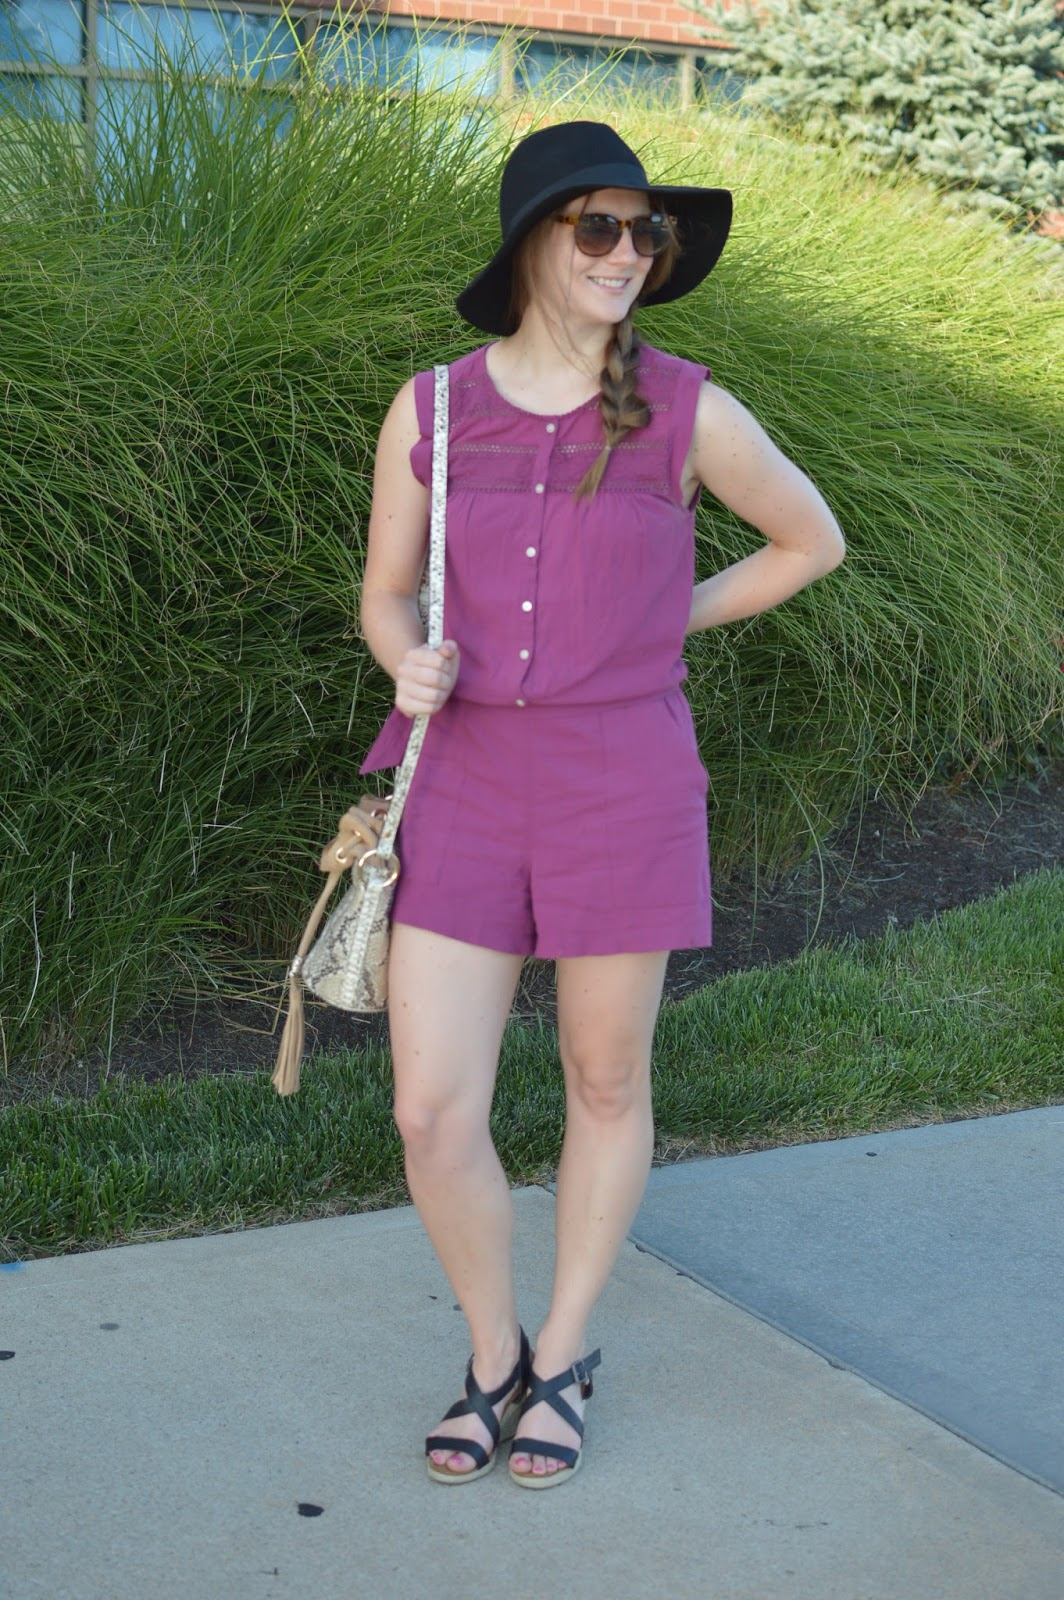 burgundy lace romper | romper with a floppy hat | how to wear a floppy hat during the summer | summer outfit ideas | snakeskin bucket bag | your life styled |